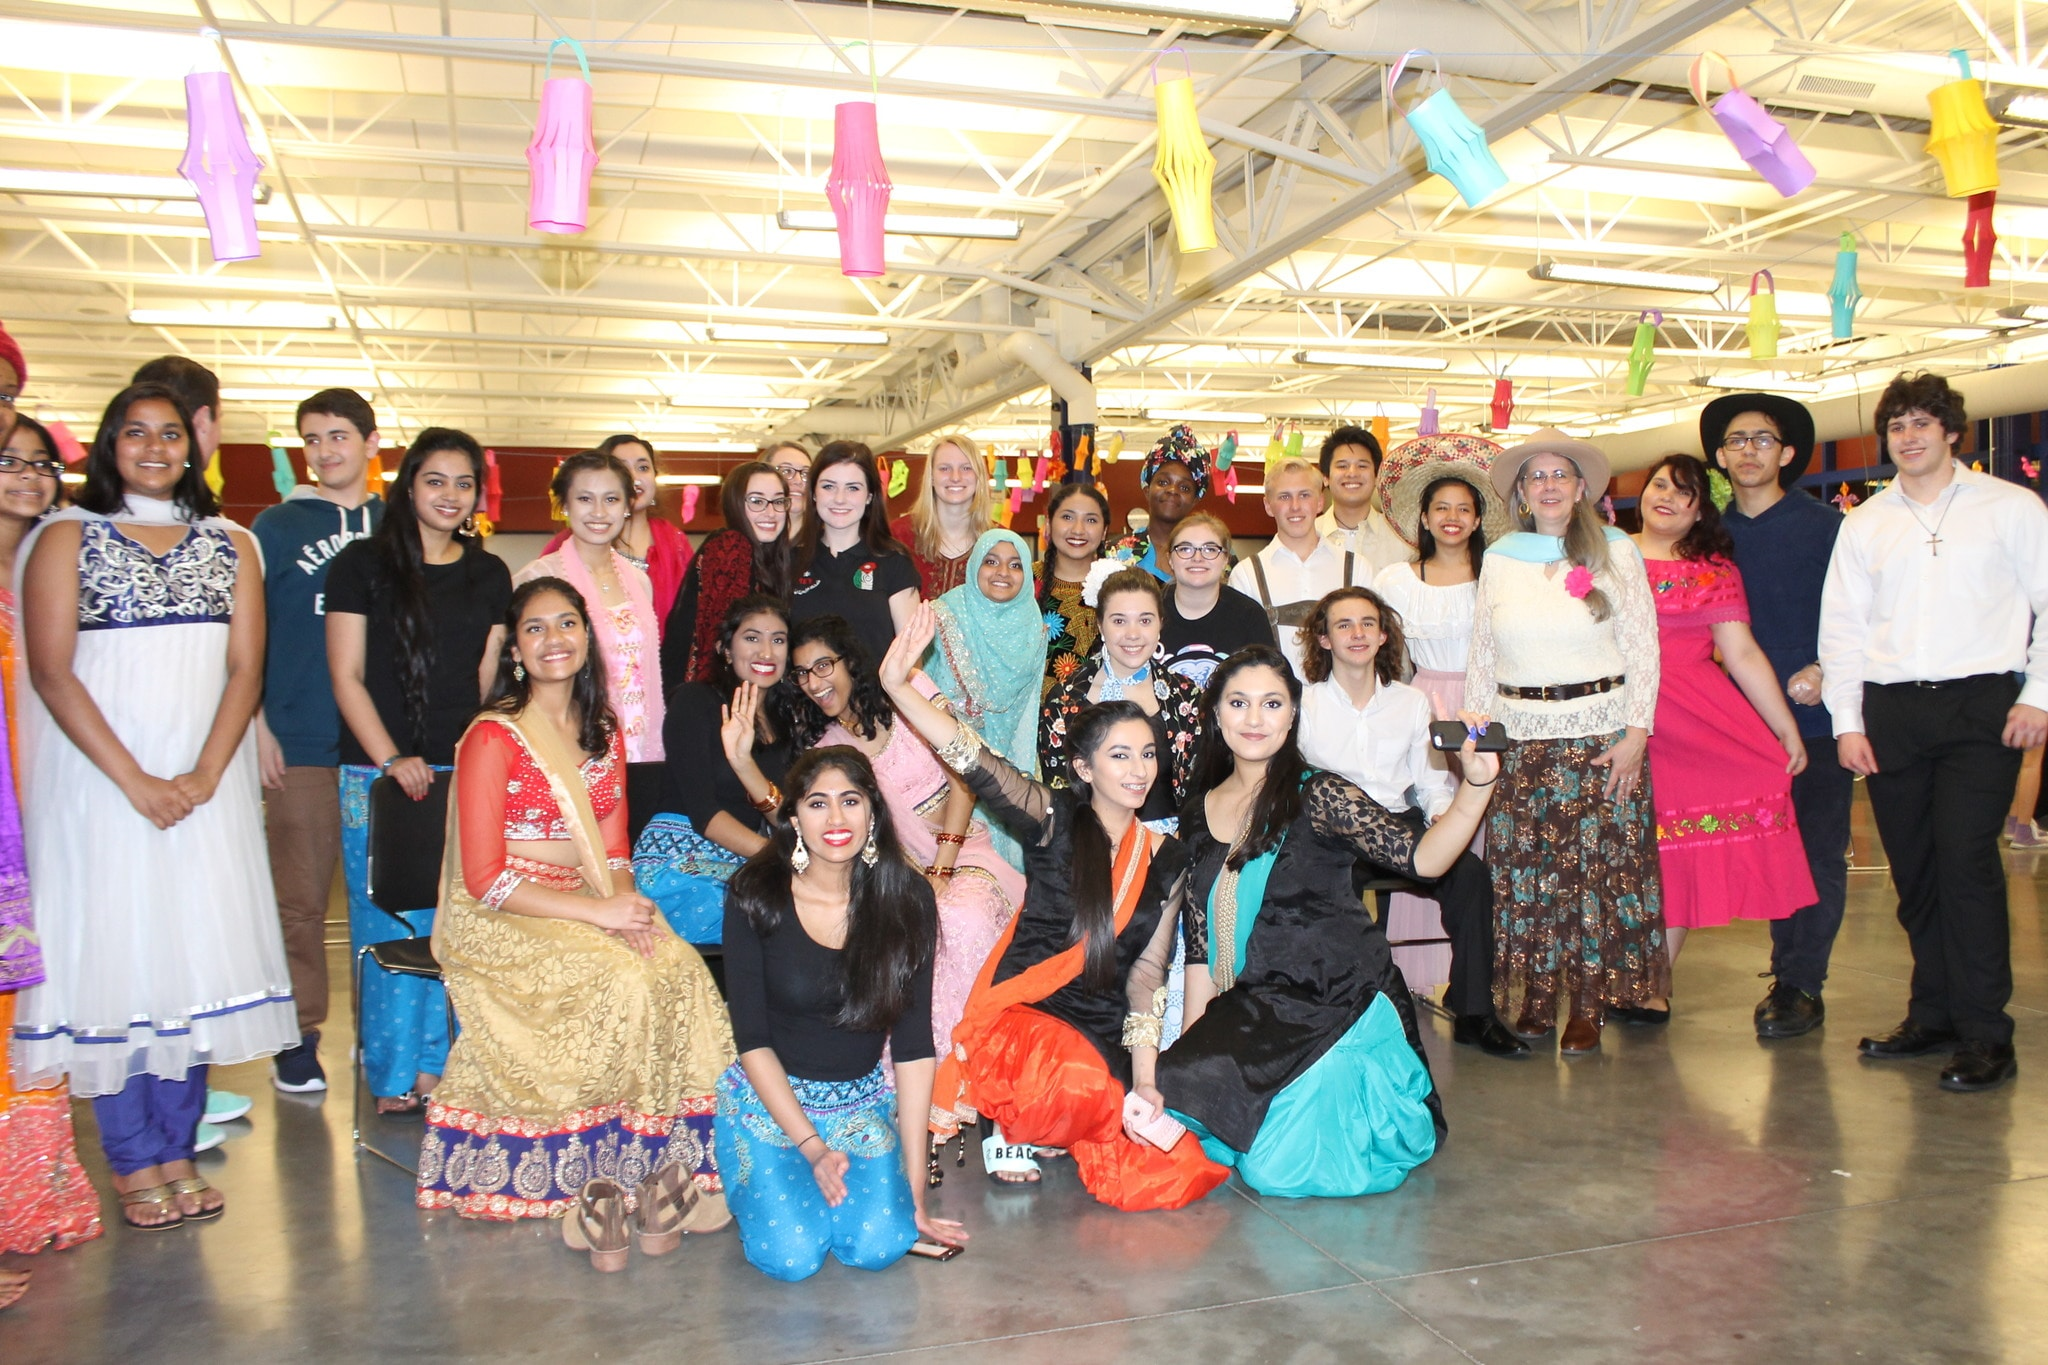 Students from Hamilton Southeastern High School in Fishers, Indiana gather for an International event to benefit the students of Matanya's Hope